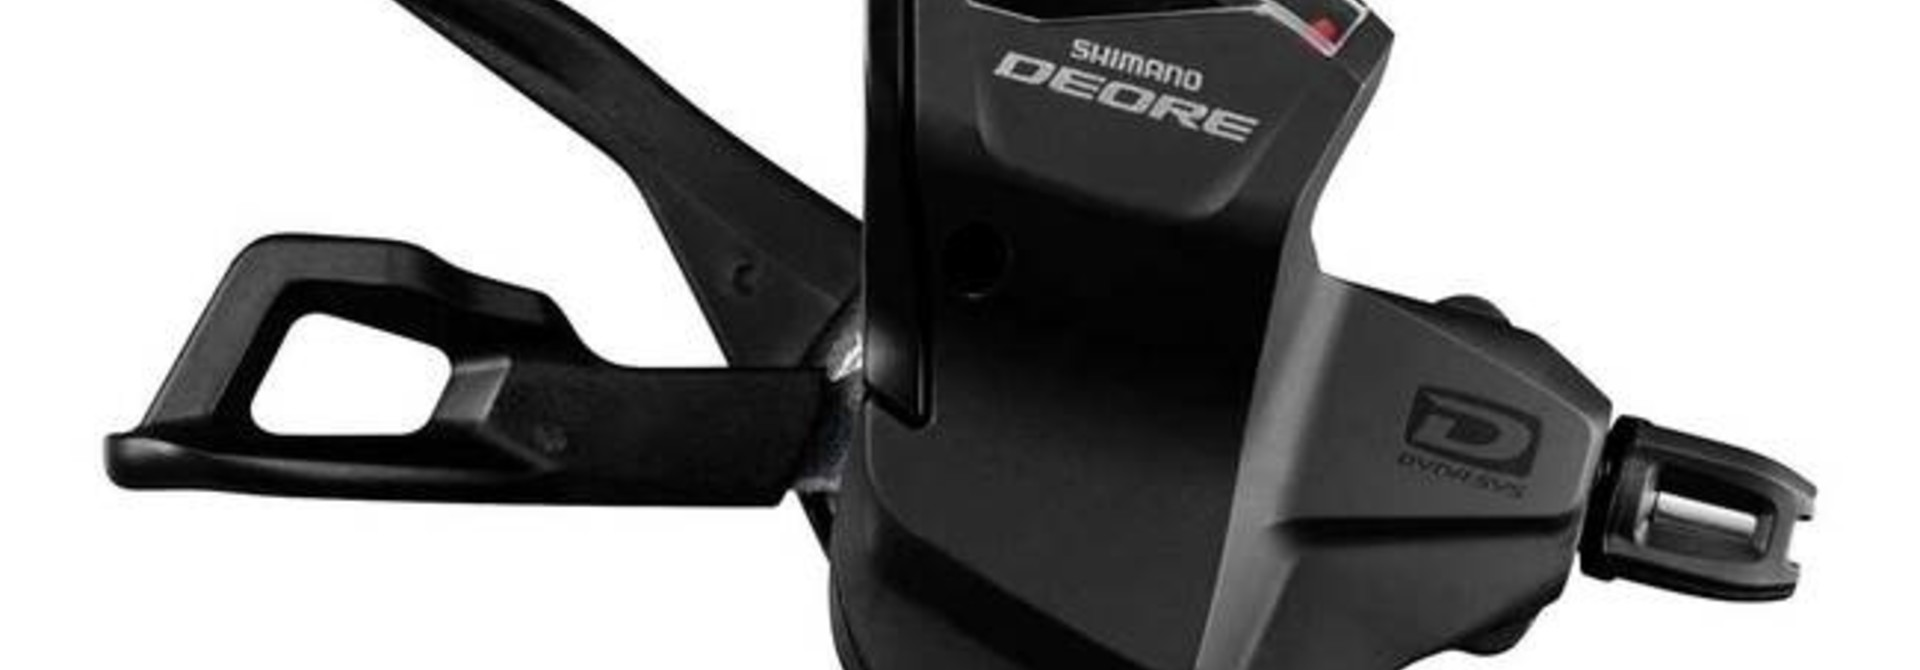 Shimano Shift Lever, SL-M6000-R, Deore, Right, Rear 10-Speed